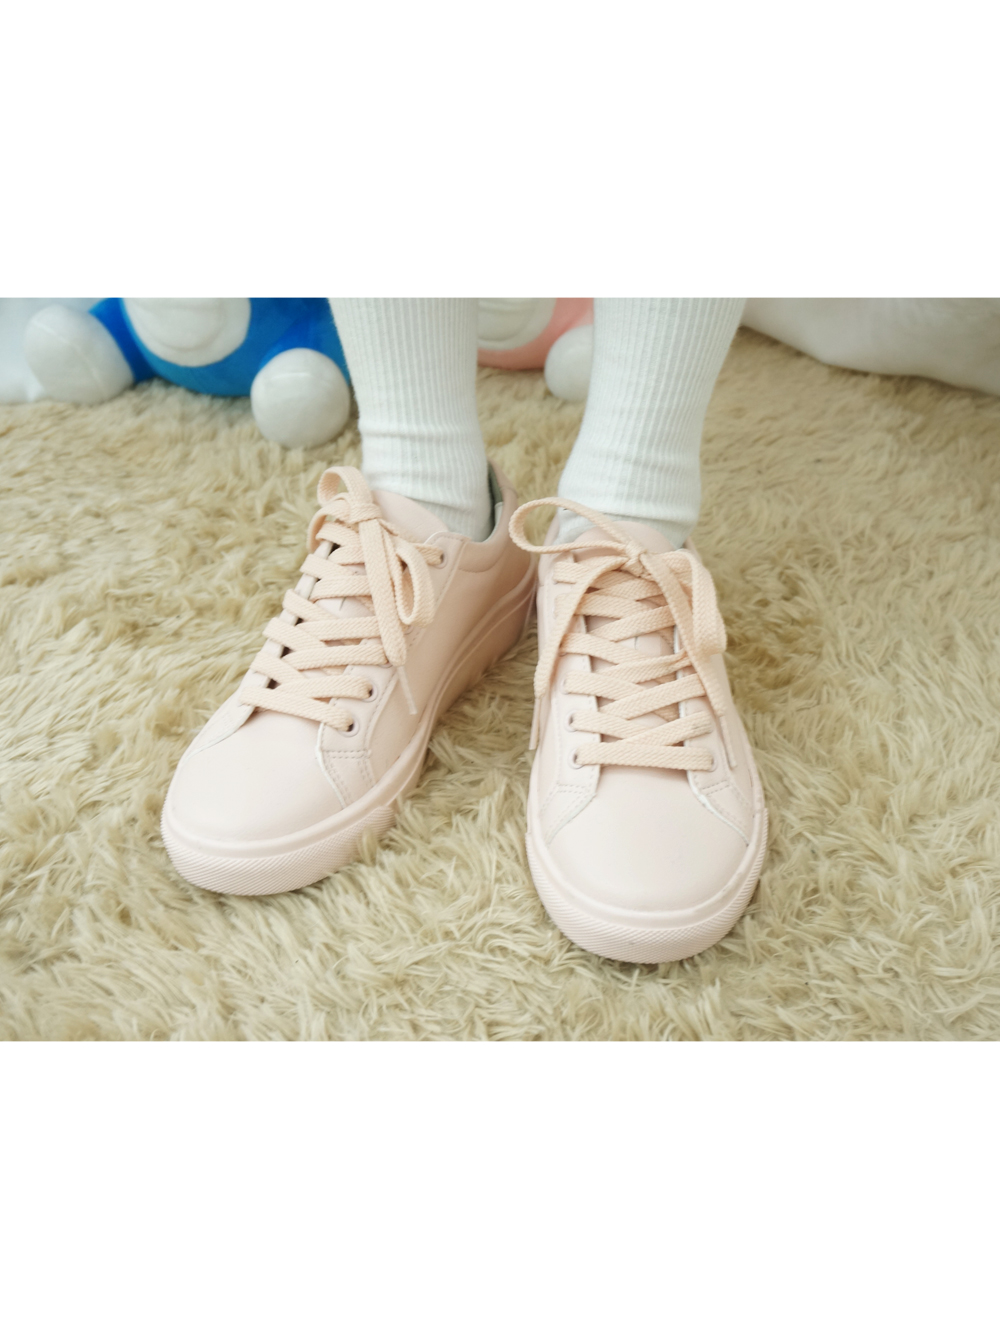 Candy Monochrome Sneakers